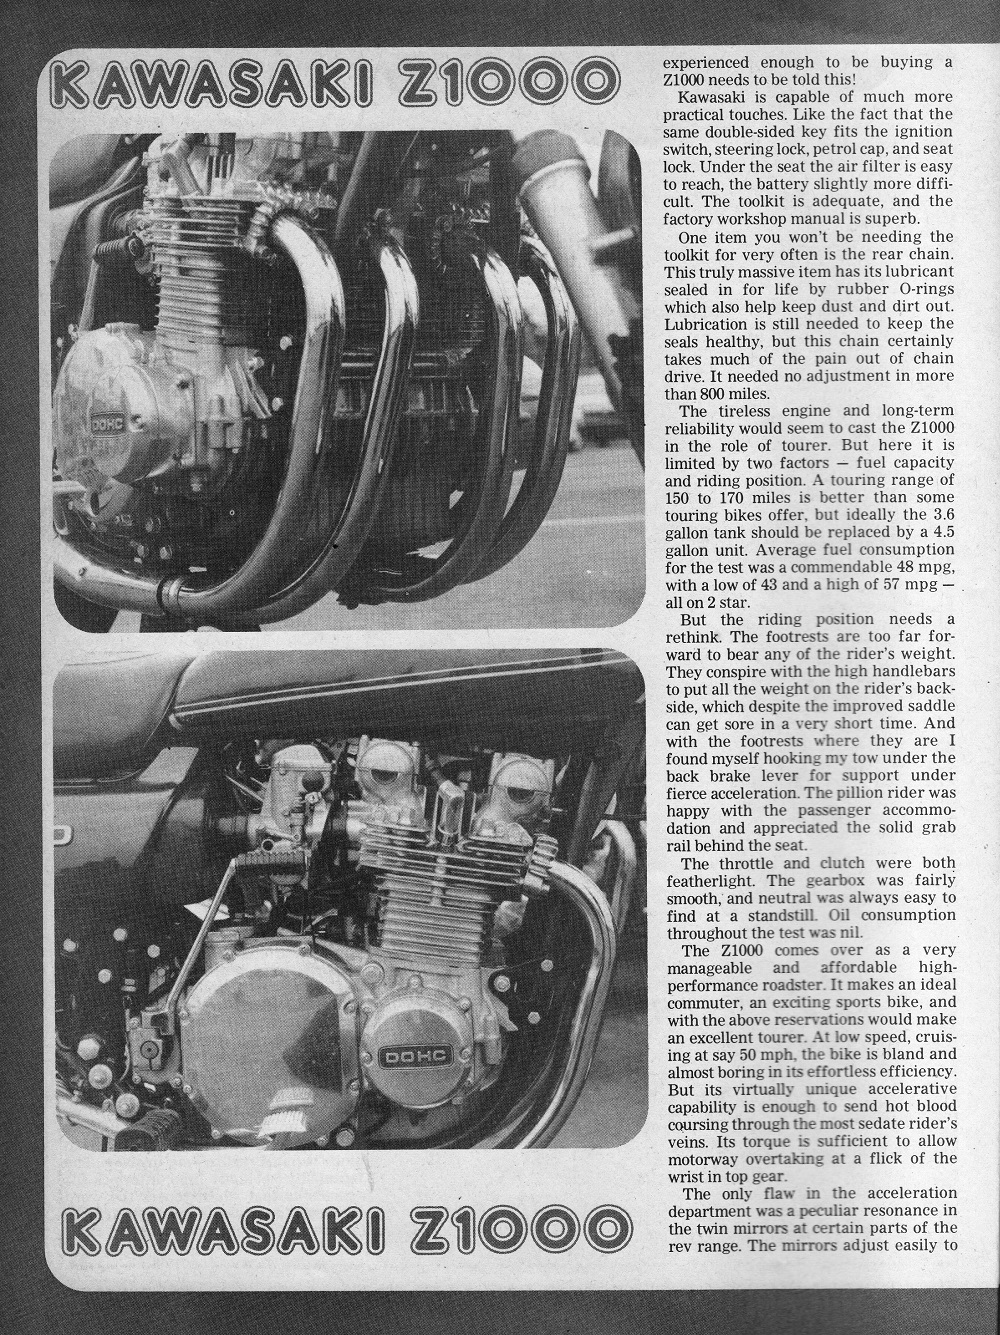 1977 Kawasaki Z1000 road test.5.jpg